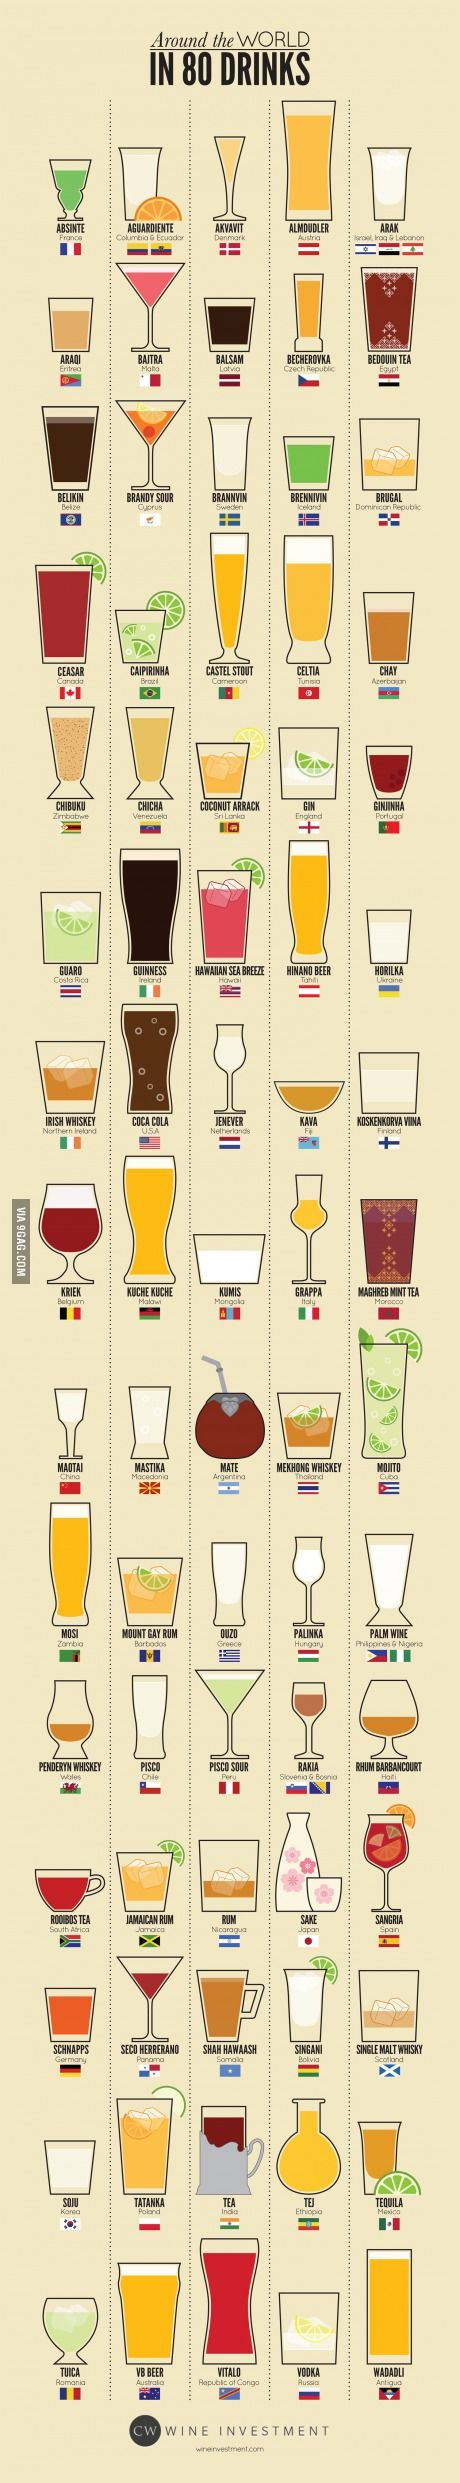 This could come in handy for my Eurovision Song Contest drinking session! Around the world in 80 Drinks